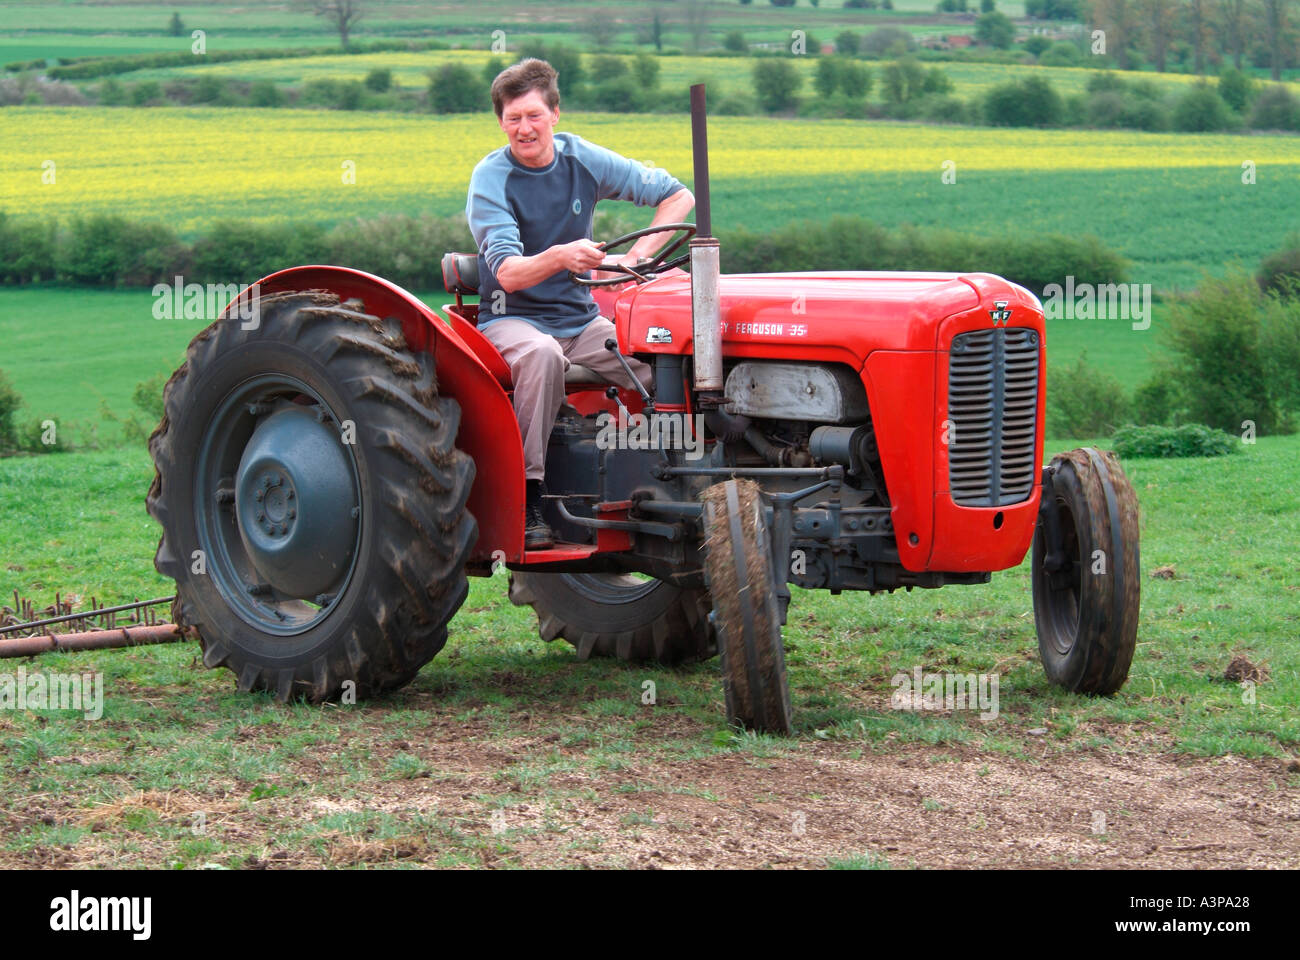 1959 red massey ferguson fe35 tractor used today for. Black Bedroom Furniture Sets. Home Design Ideas